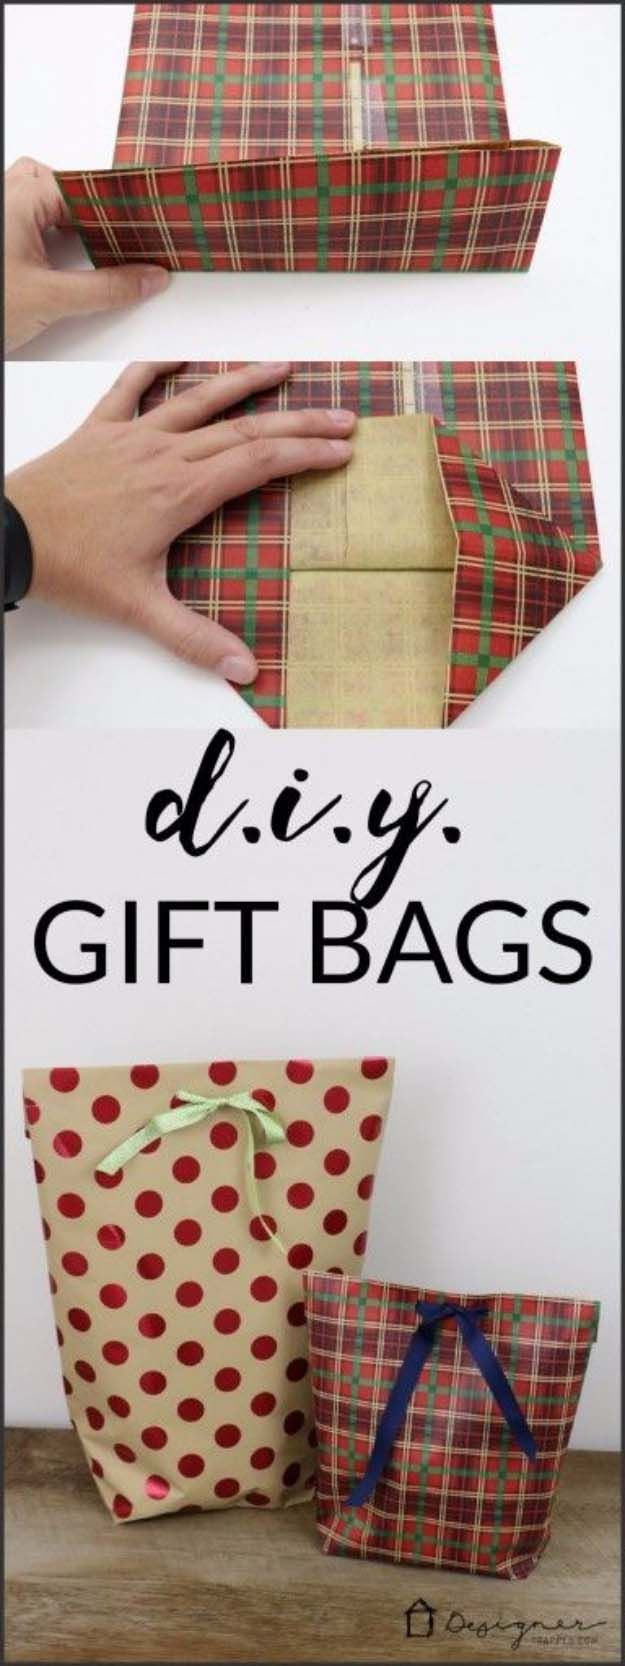 DIY Gift Wrapping Ideas - How To Wrap A Present - Tutorials, Cool Ideas and Instructions | Cute Gift Wrap Ideas for Christmas, Birthdays and…